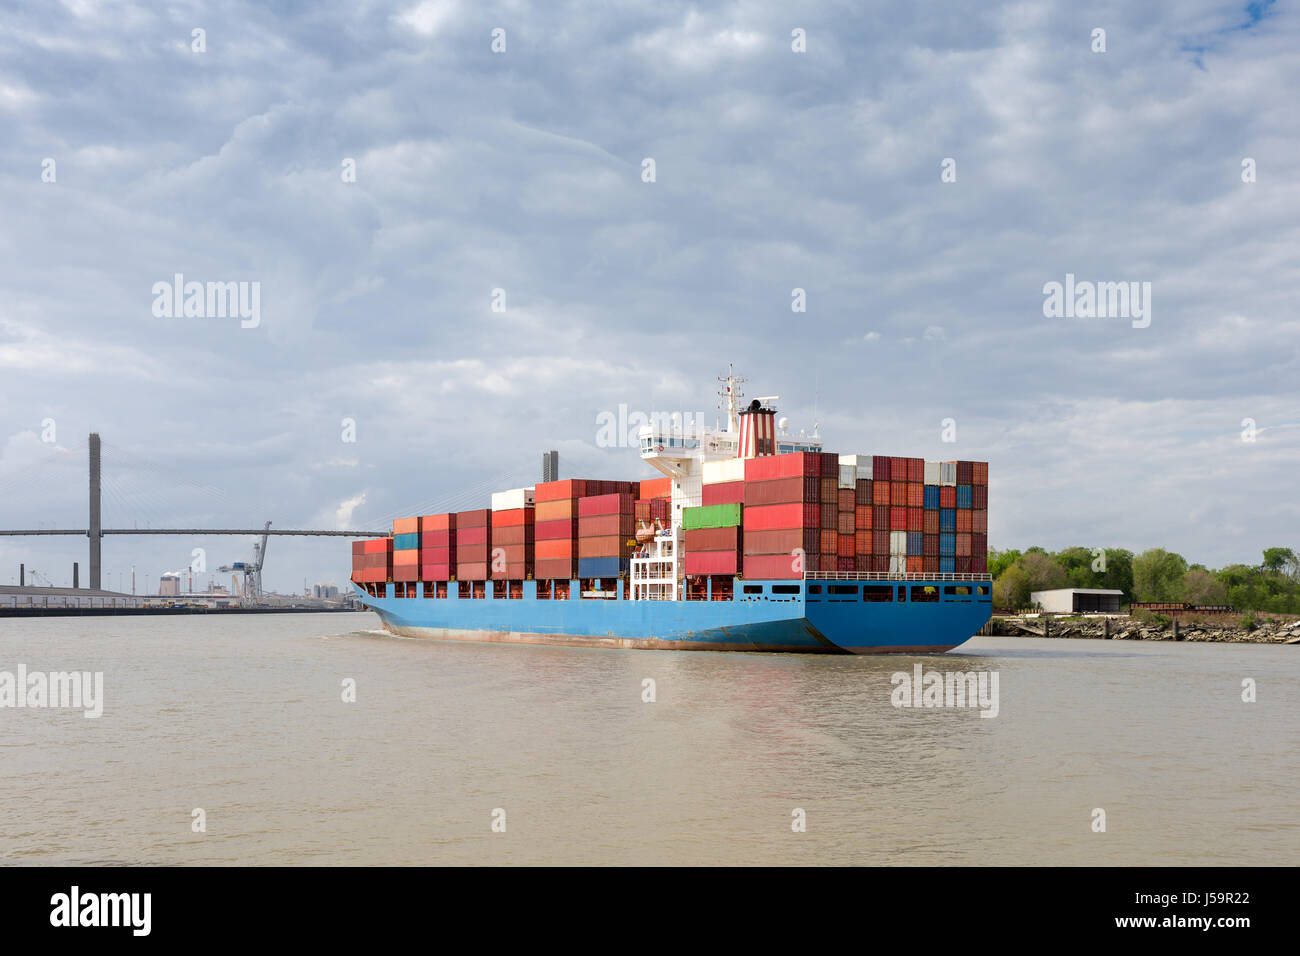 Fully loaded cargo container ship approaching the Talmadge Memorial Bridge as it enters Port of Savannah in Georgia. - Stock Image